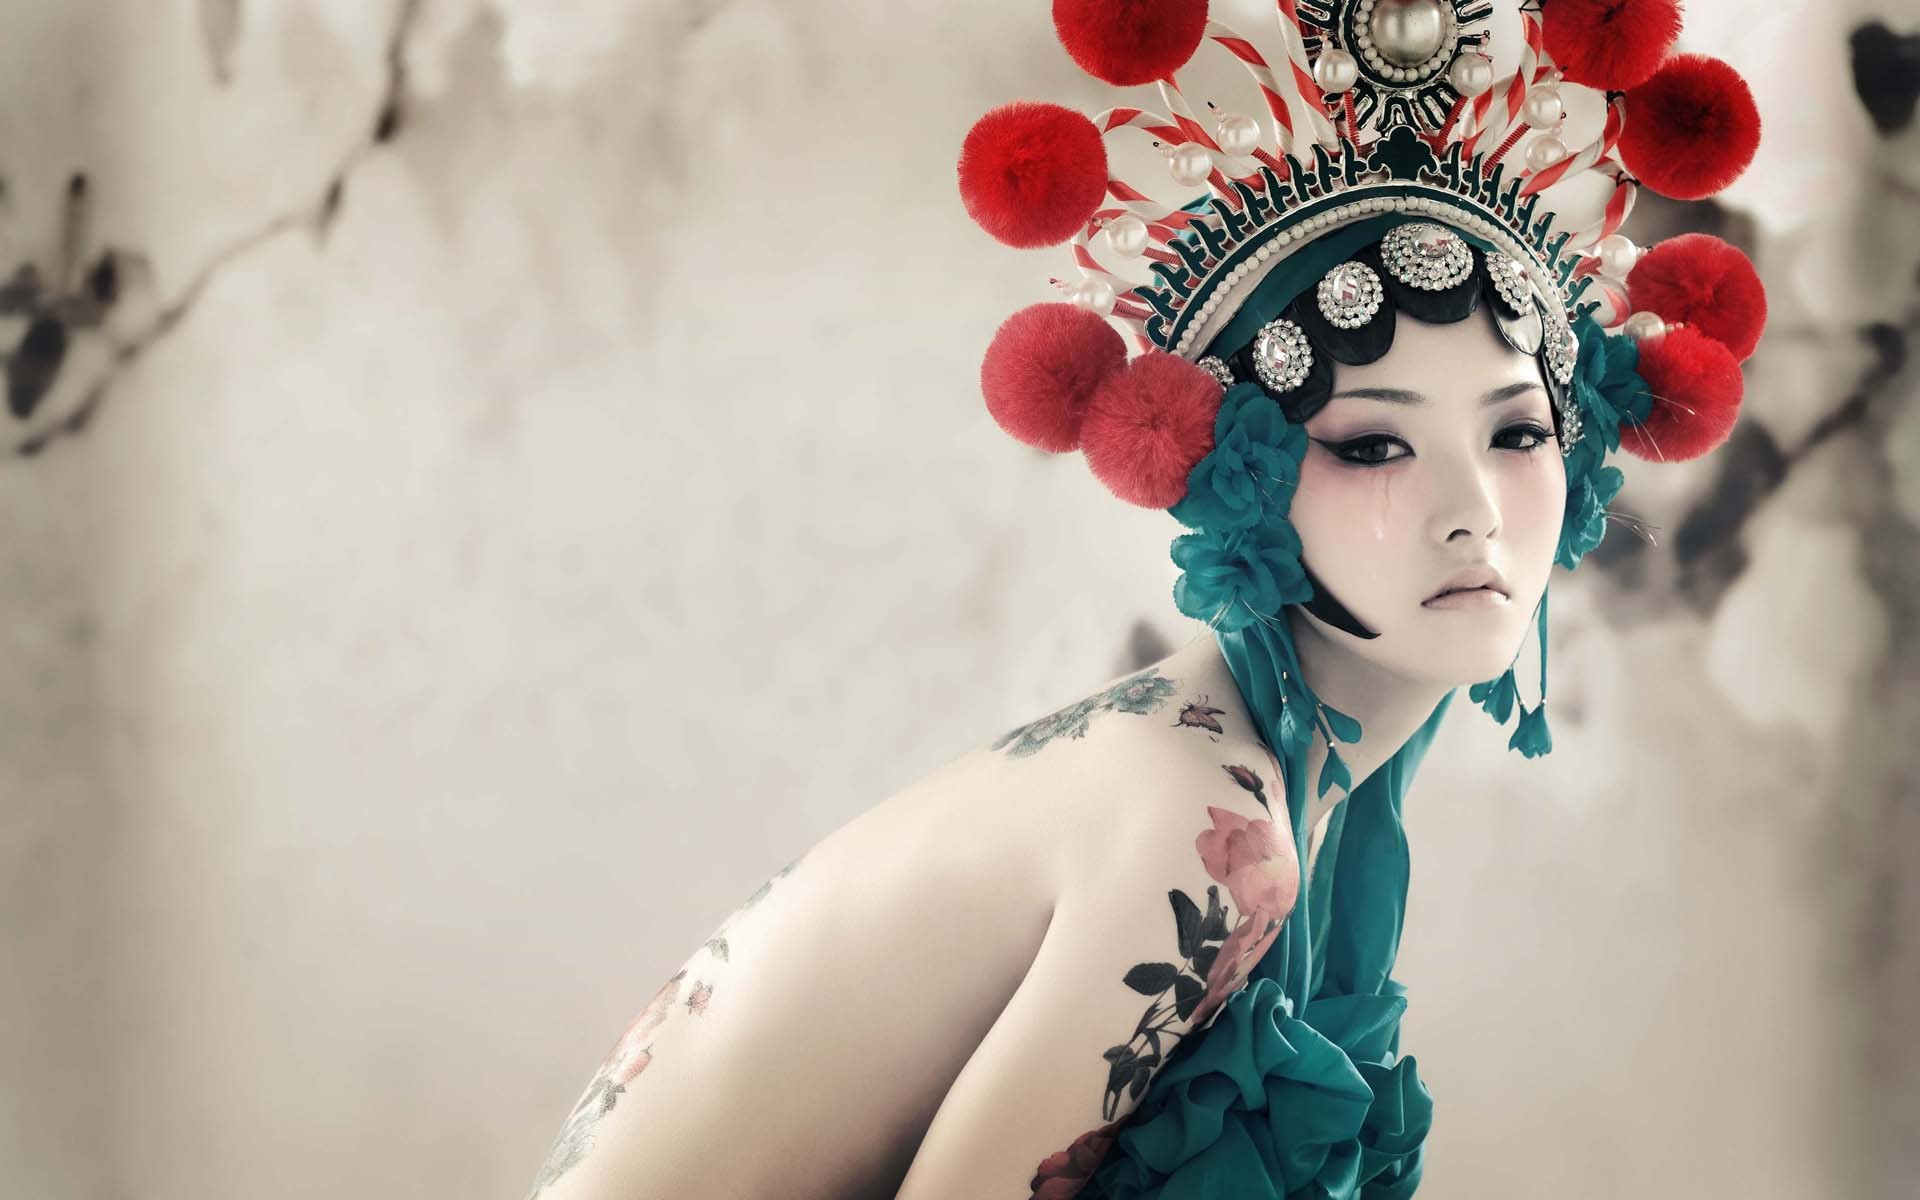 Res: 1920x1200, Japanese girl with tattoos